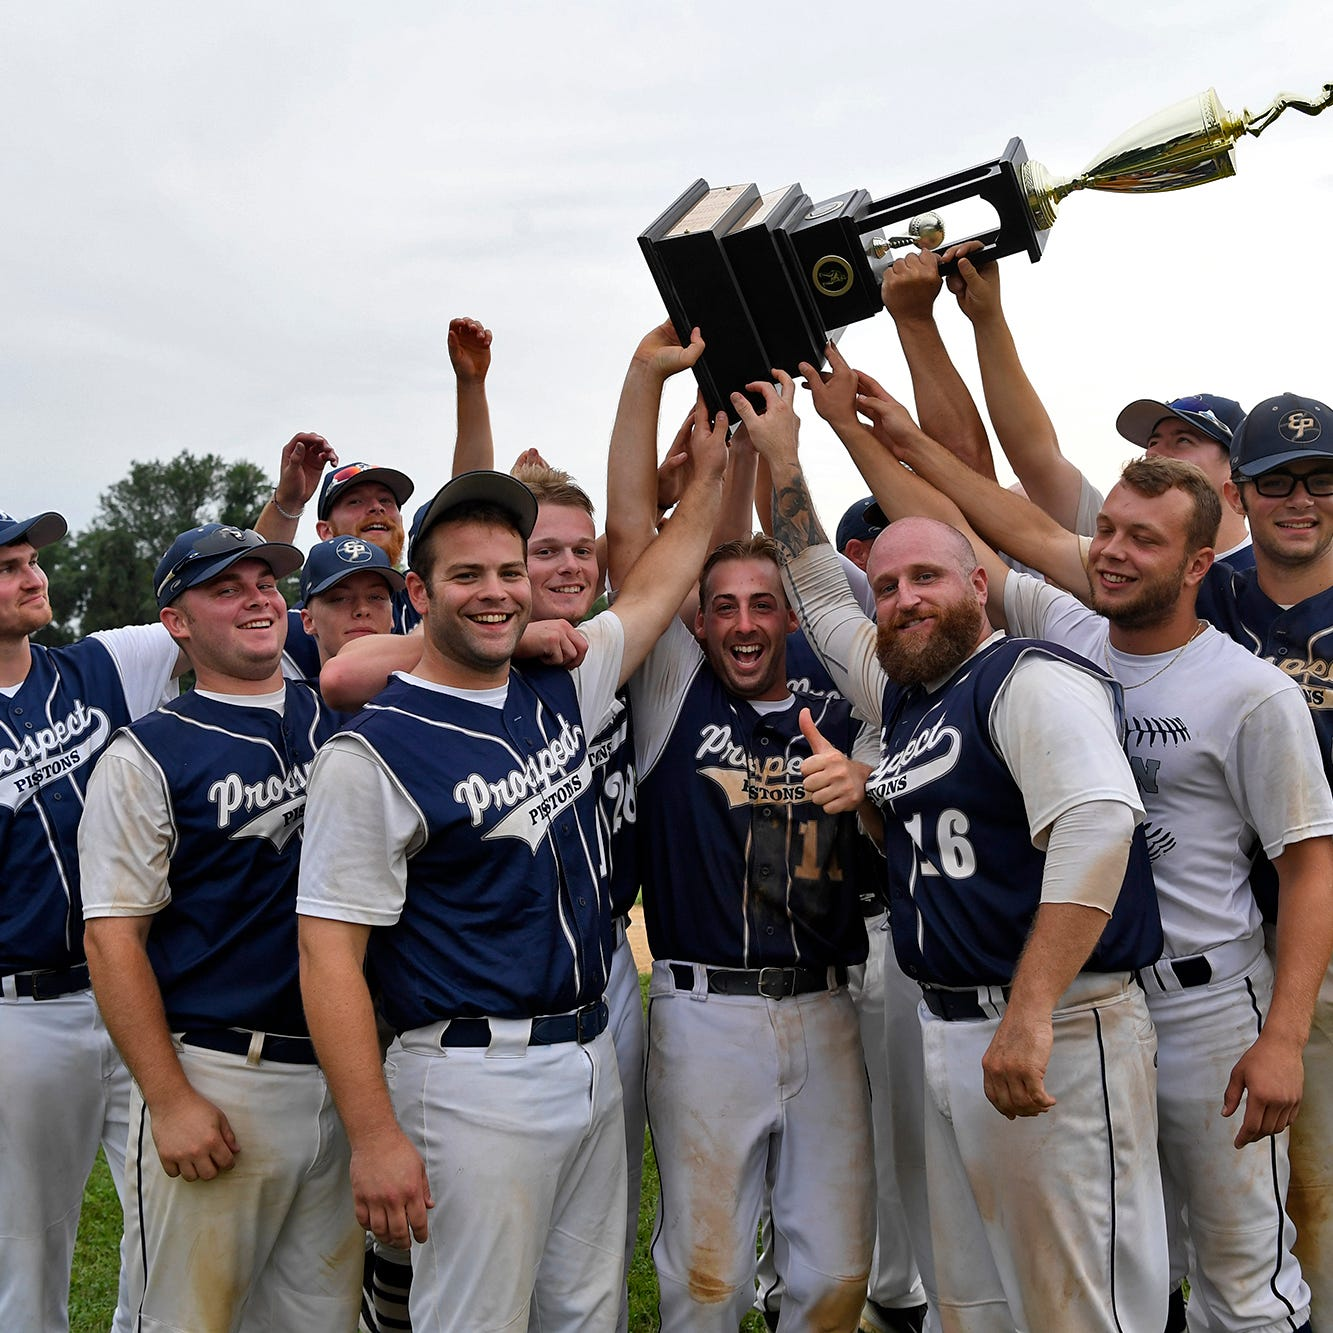 East Prospect earns pair of wins Sunday to claim York County Baseball Championship Series